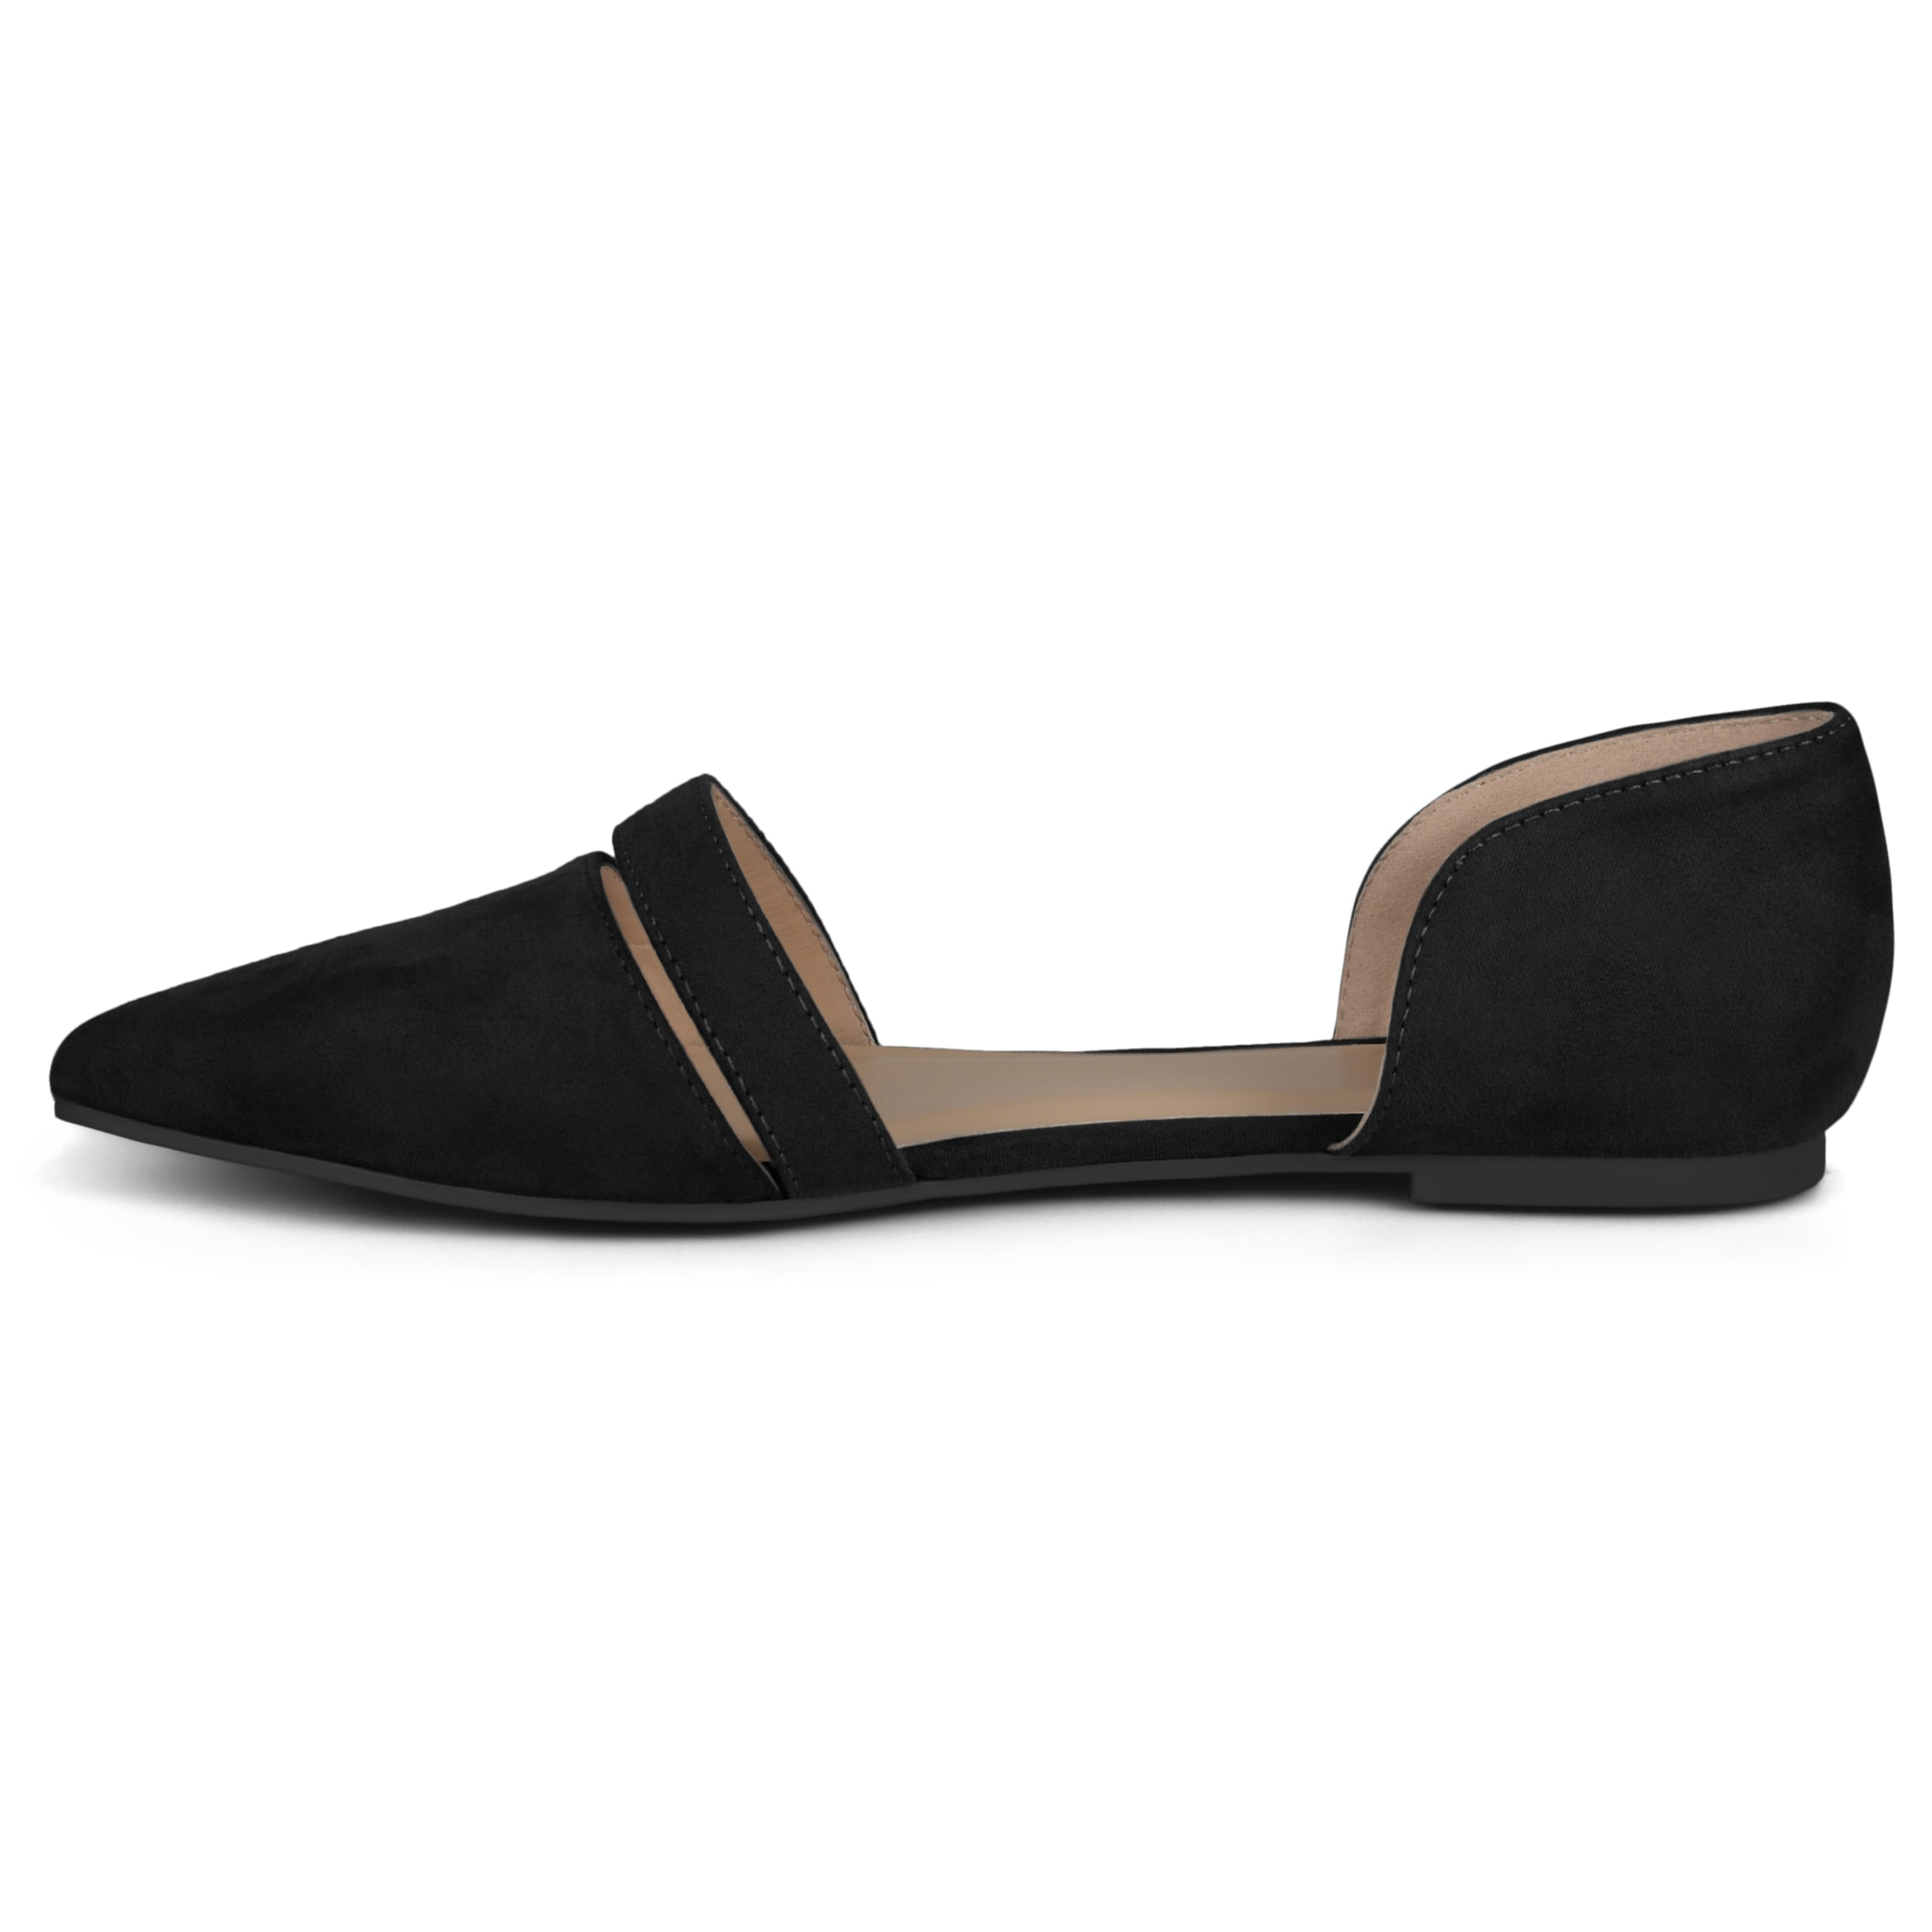 Journee Collection Womens vera Fabric Pointed Toe Ankle Strap Slingback Flats